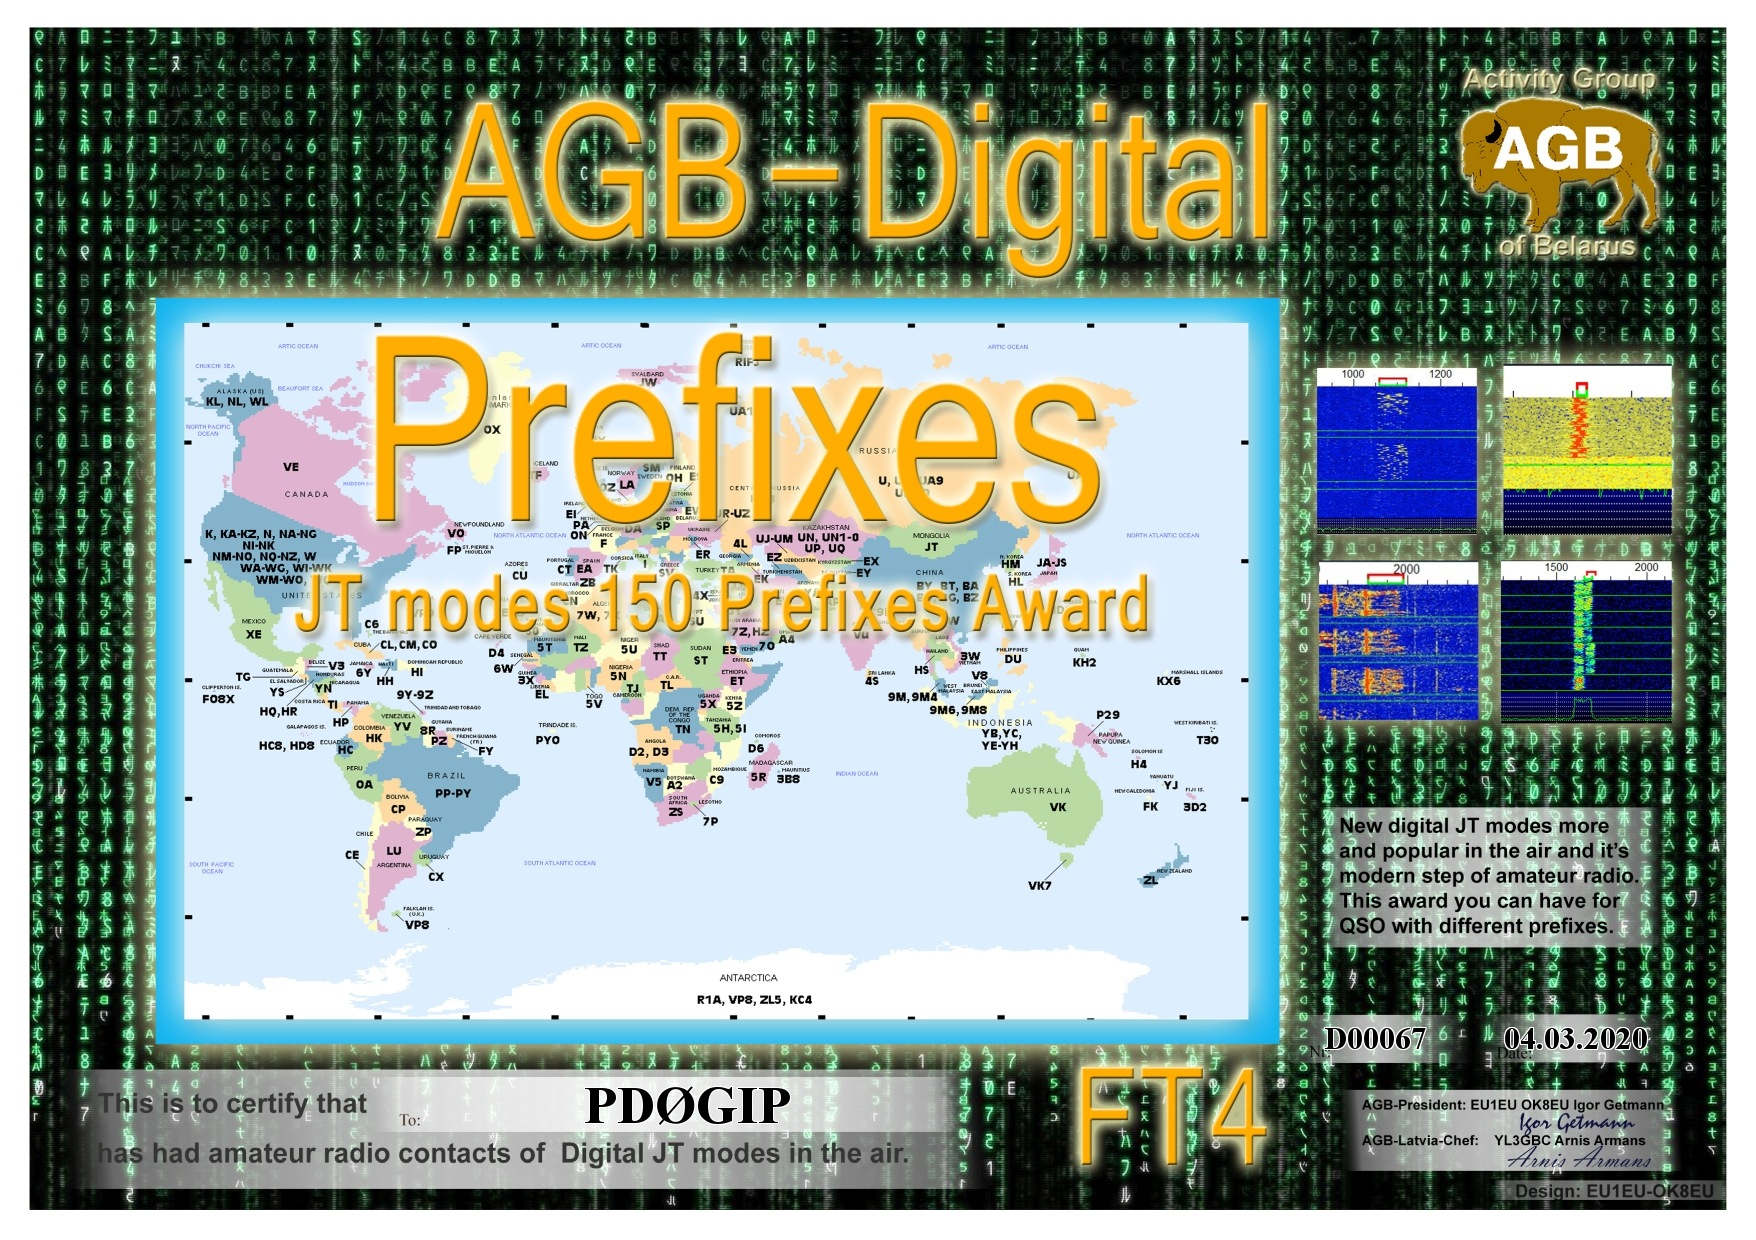 PD0GIP PREFIXES FT4 150 AGB